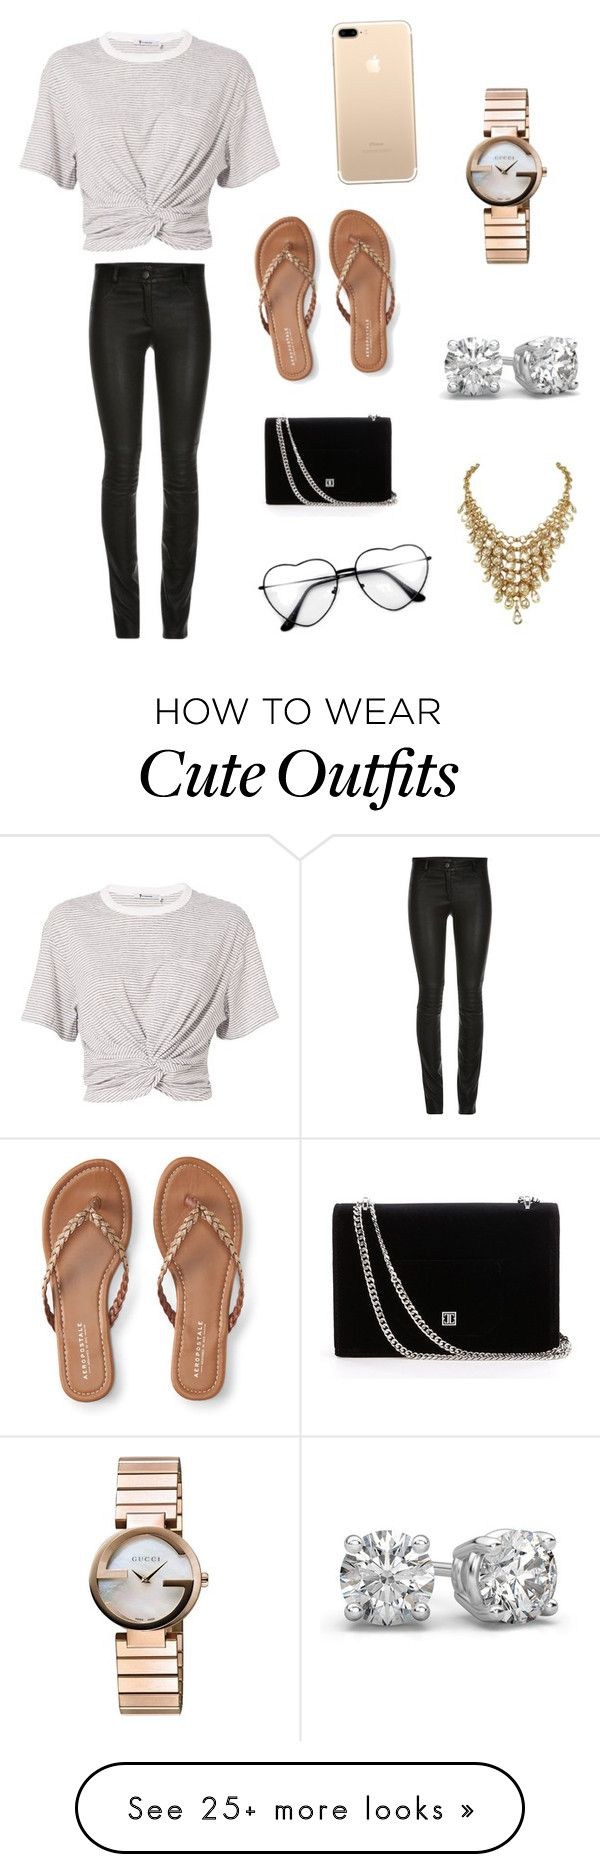 best outfit sets images on pinterest beautiful clothes cute